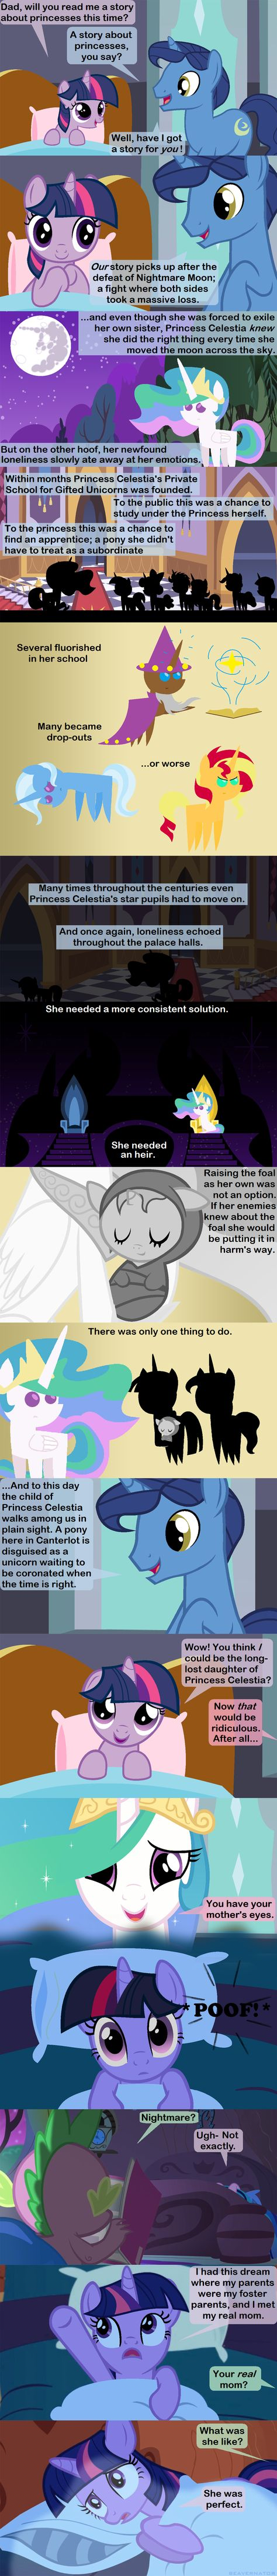 Next gen twilight line by pencillspark on deviantart - Camp Friendship Talent Show Theater My Little Pony 3 Pinterest Friendship Theater And Camps